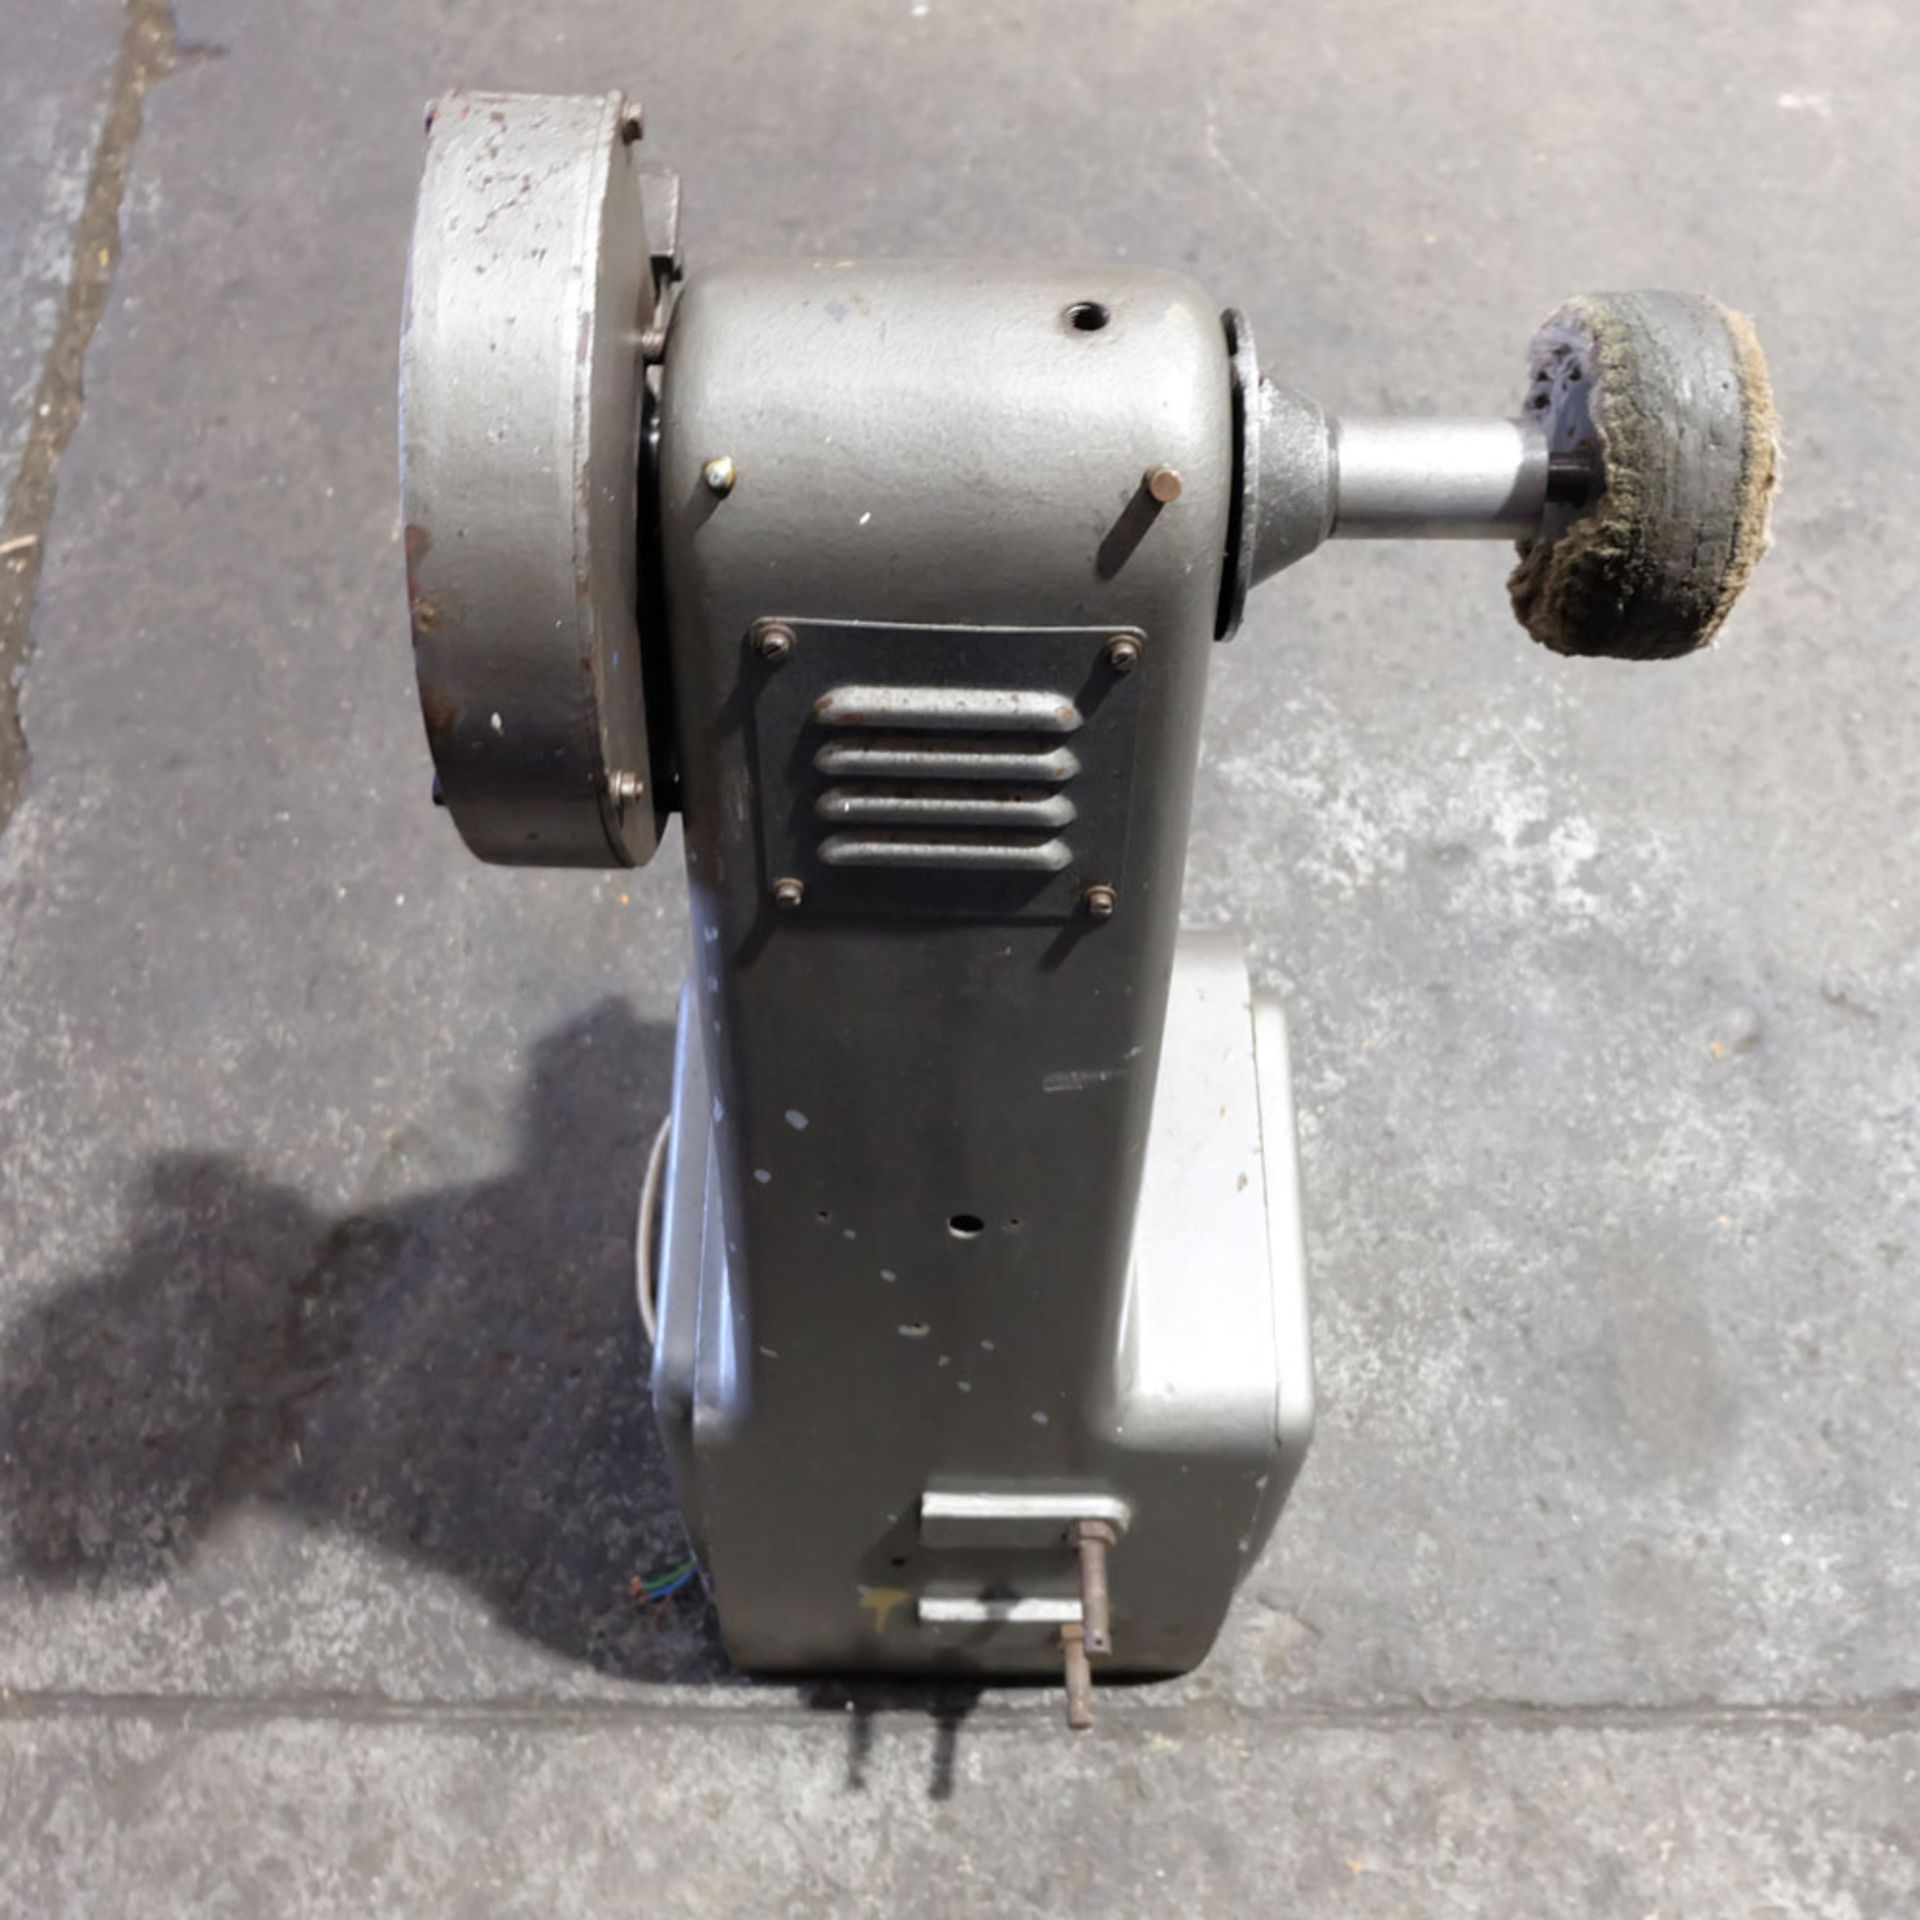 Union Jubilee Double Ended Pedestal Tool Grinding & Polishing Machine. Speed 2200rpm. - Image 6 of 6